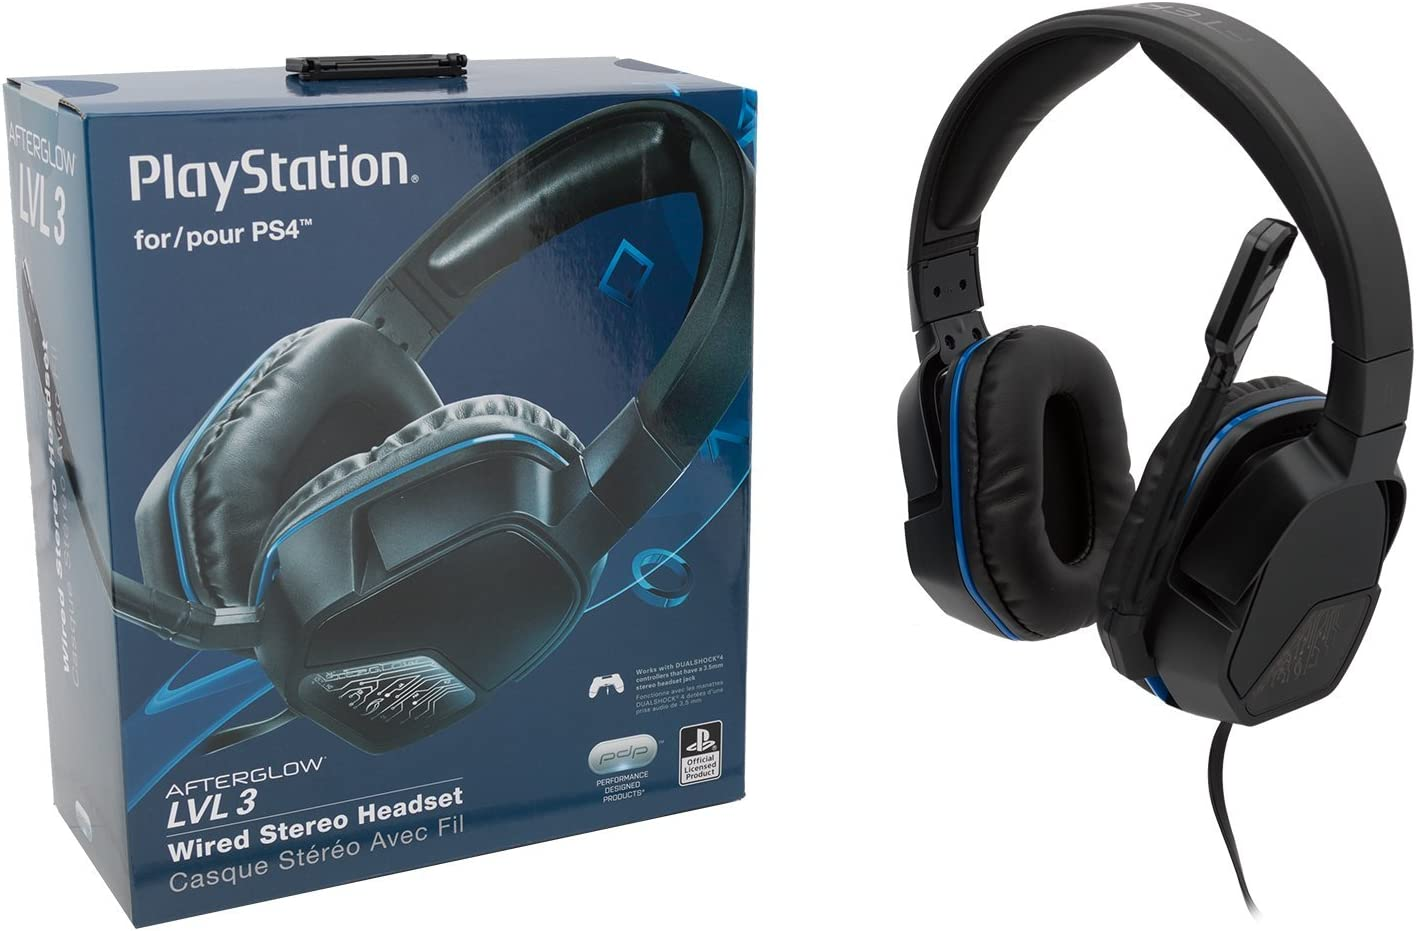 Amazon.com: PDP Sony Afterglow LVL 3 Stereo Gaming Headset 051-032, Black:  playstation 4: Video Games